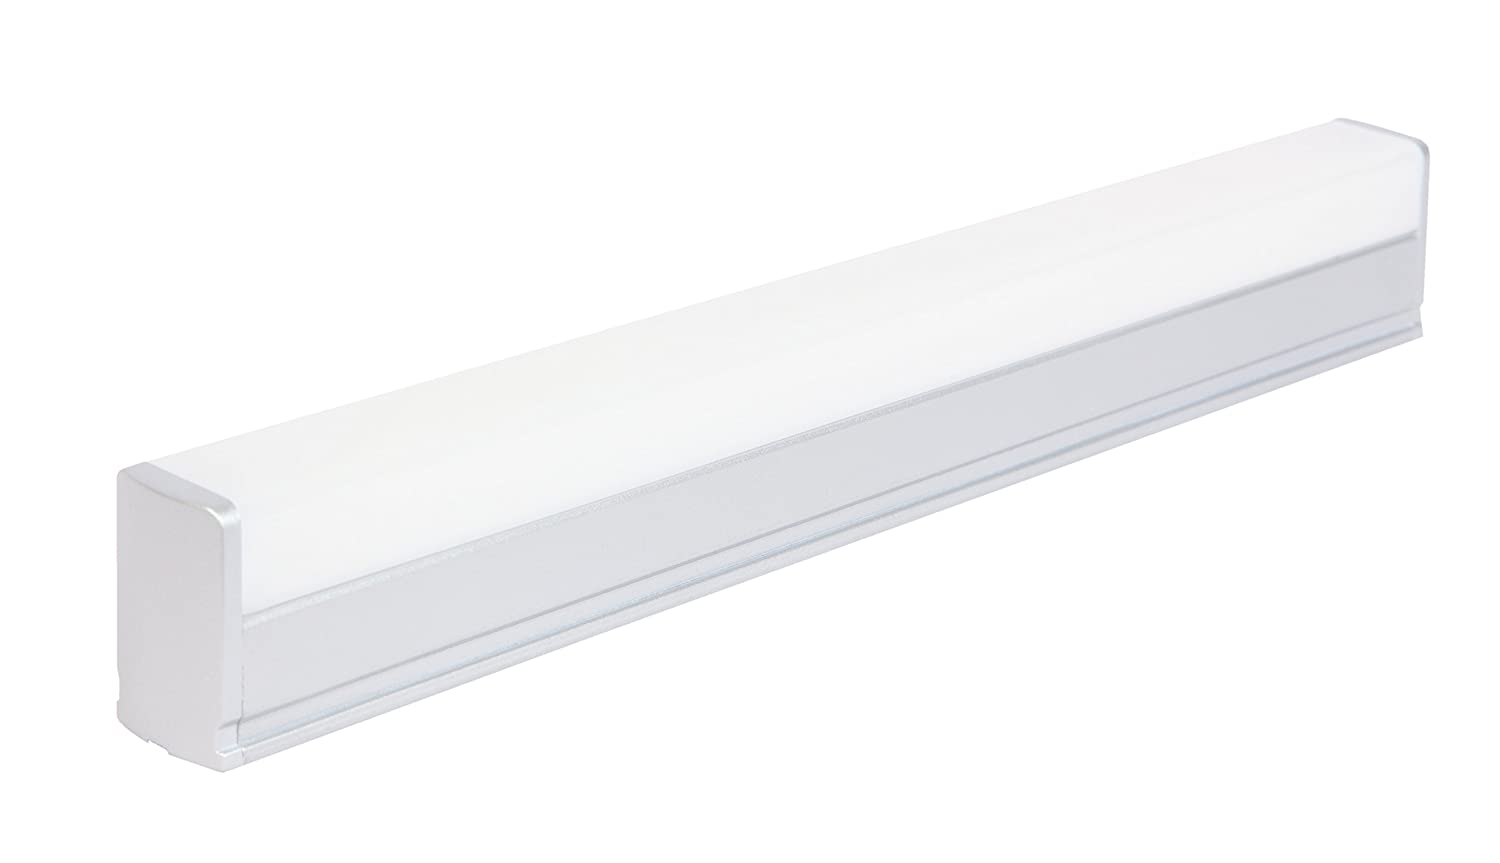 Crompton Eco Smart Linea 9-Watt LED Batten